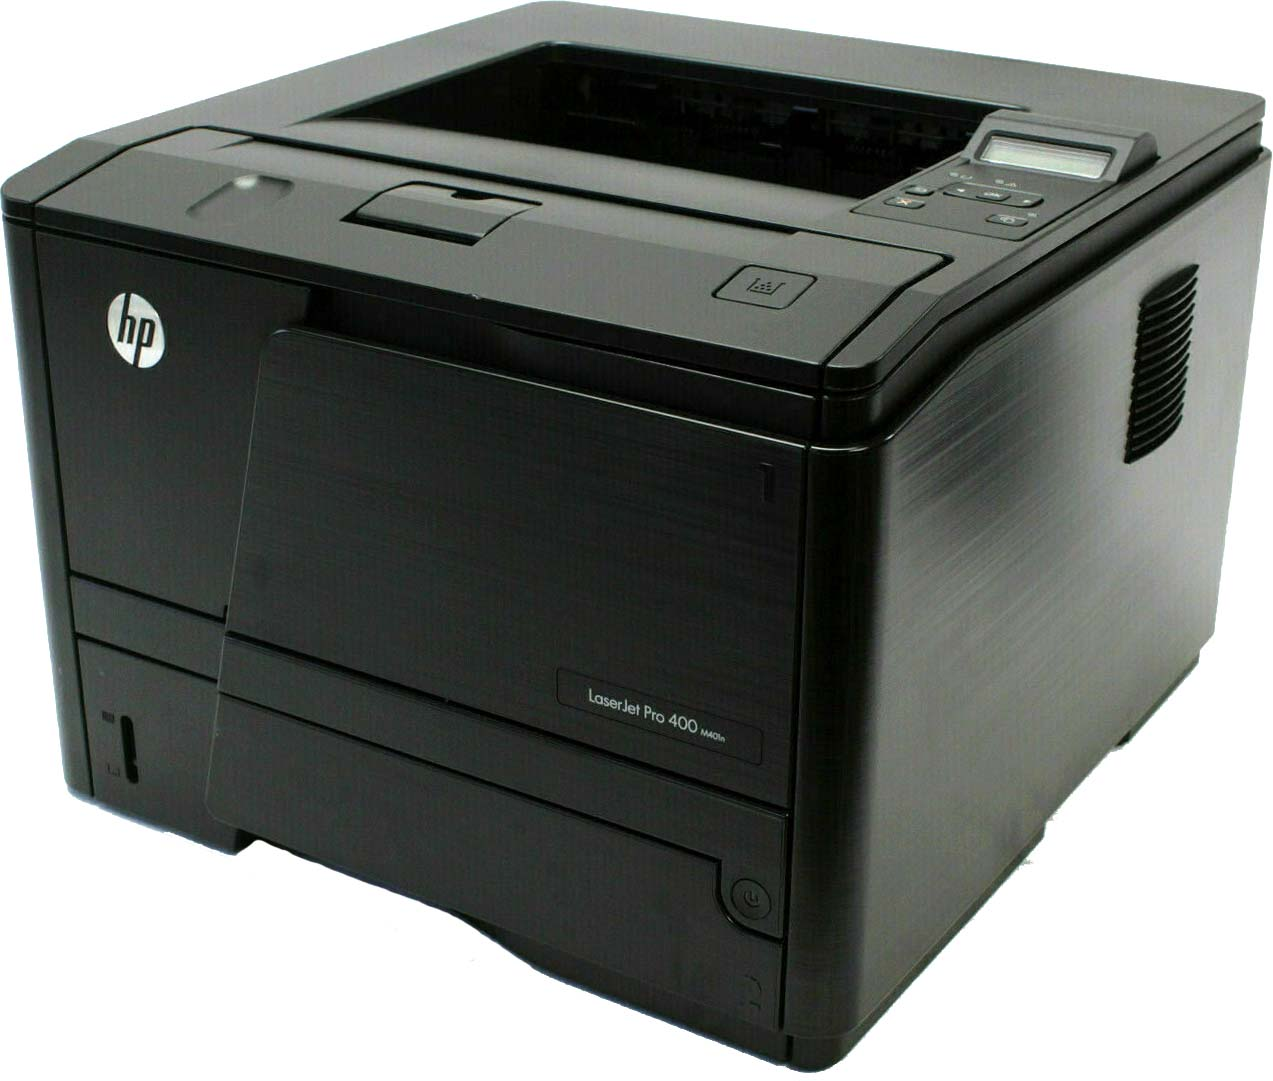 HP Laserjet Pro 400 M401n Workgroup Laser Printer